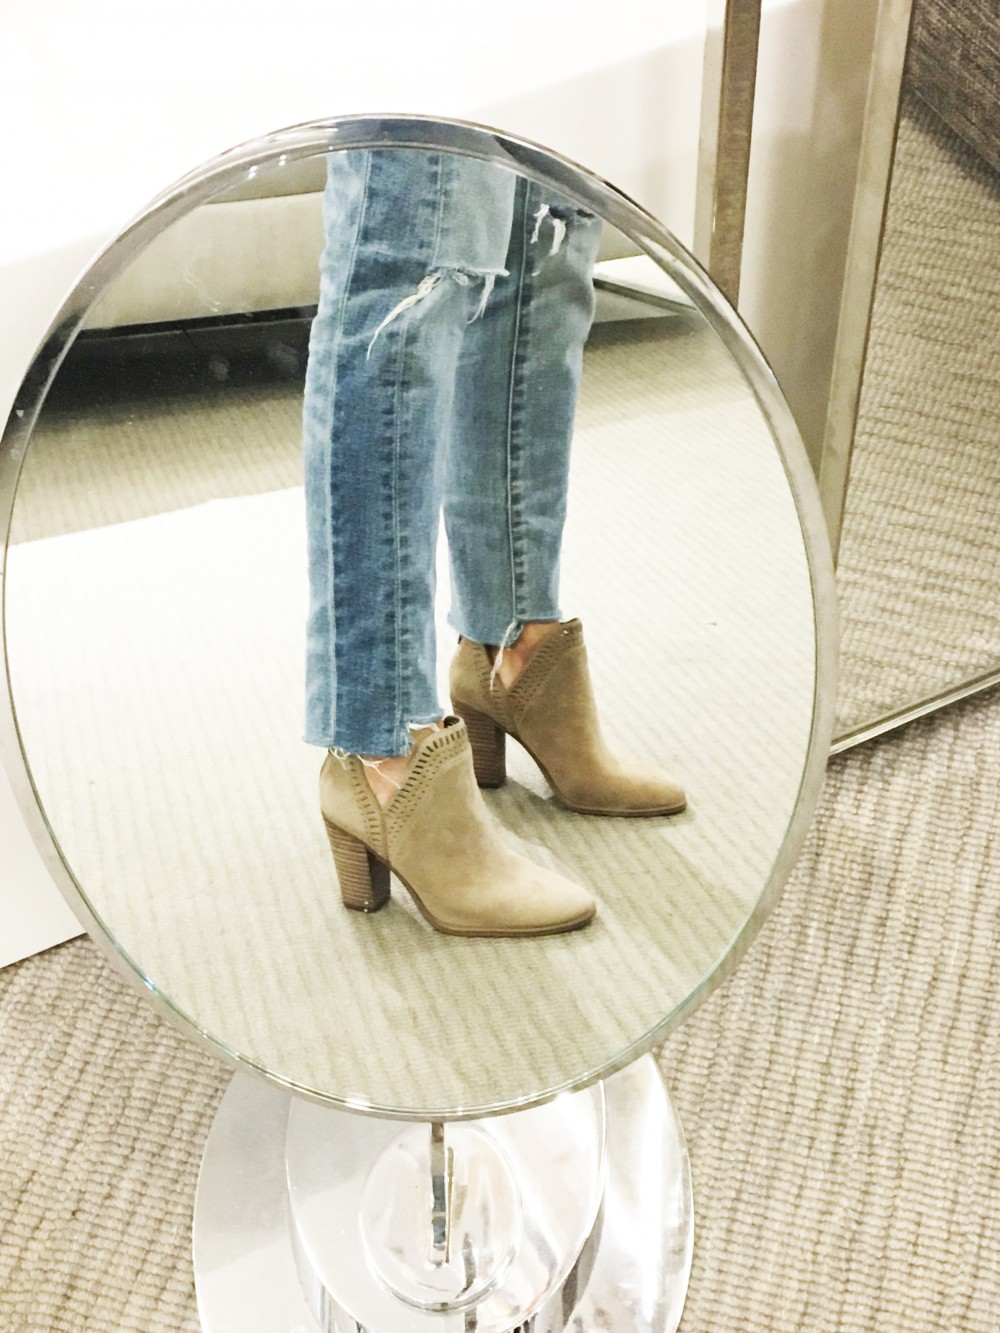 Dressing Room Diaries- Nordstrom Anniversary Sale-Fall Booties-Blogger Picks for the NSale-Nordstrom Sale-Fall Style-Fall Fashion 2017-Have Need Want